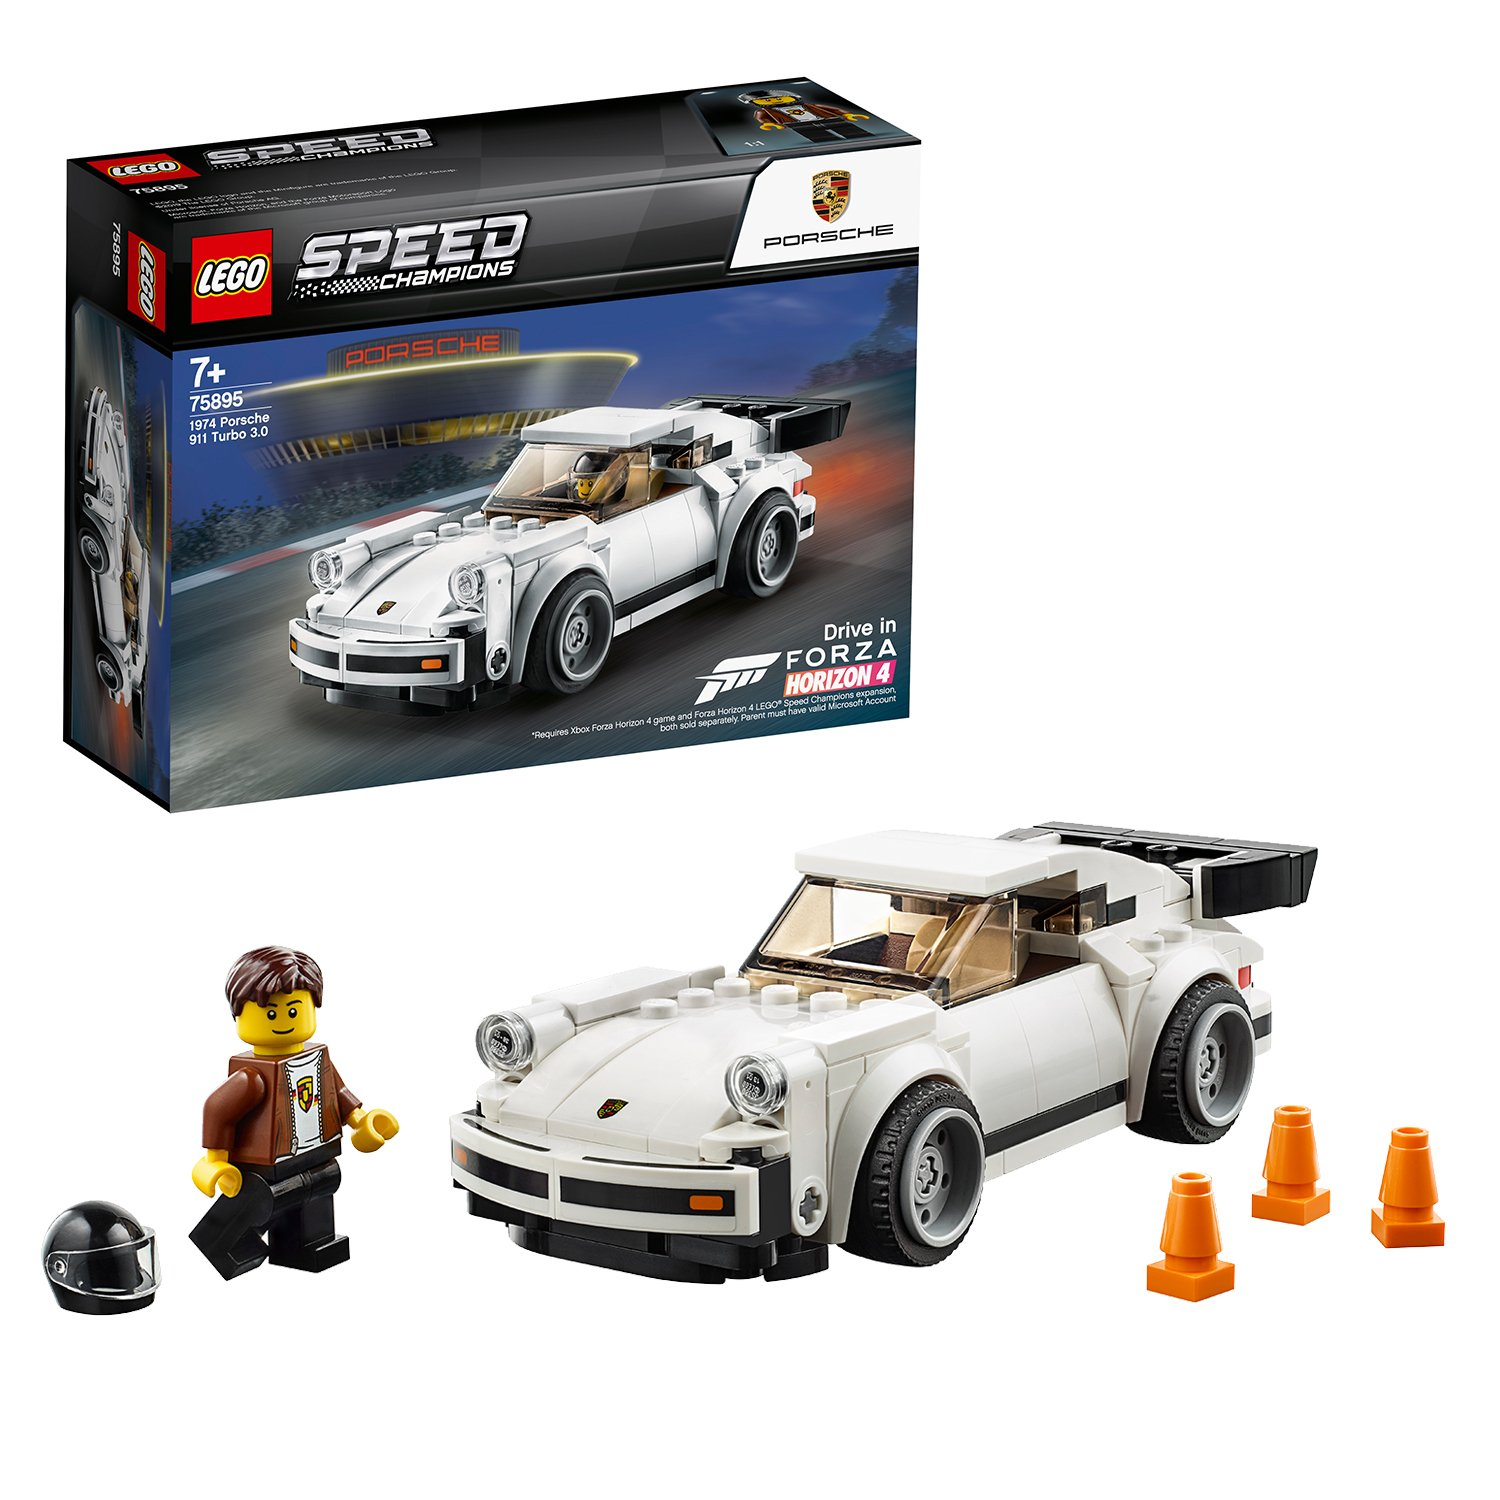 LEGO Speed Champions 1974 Porsche 911 Turbo 3.0 - 75895/t